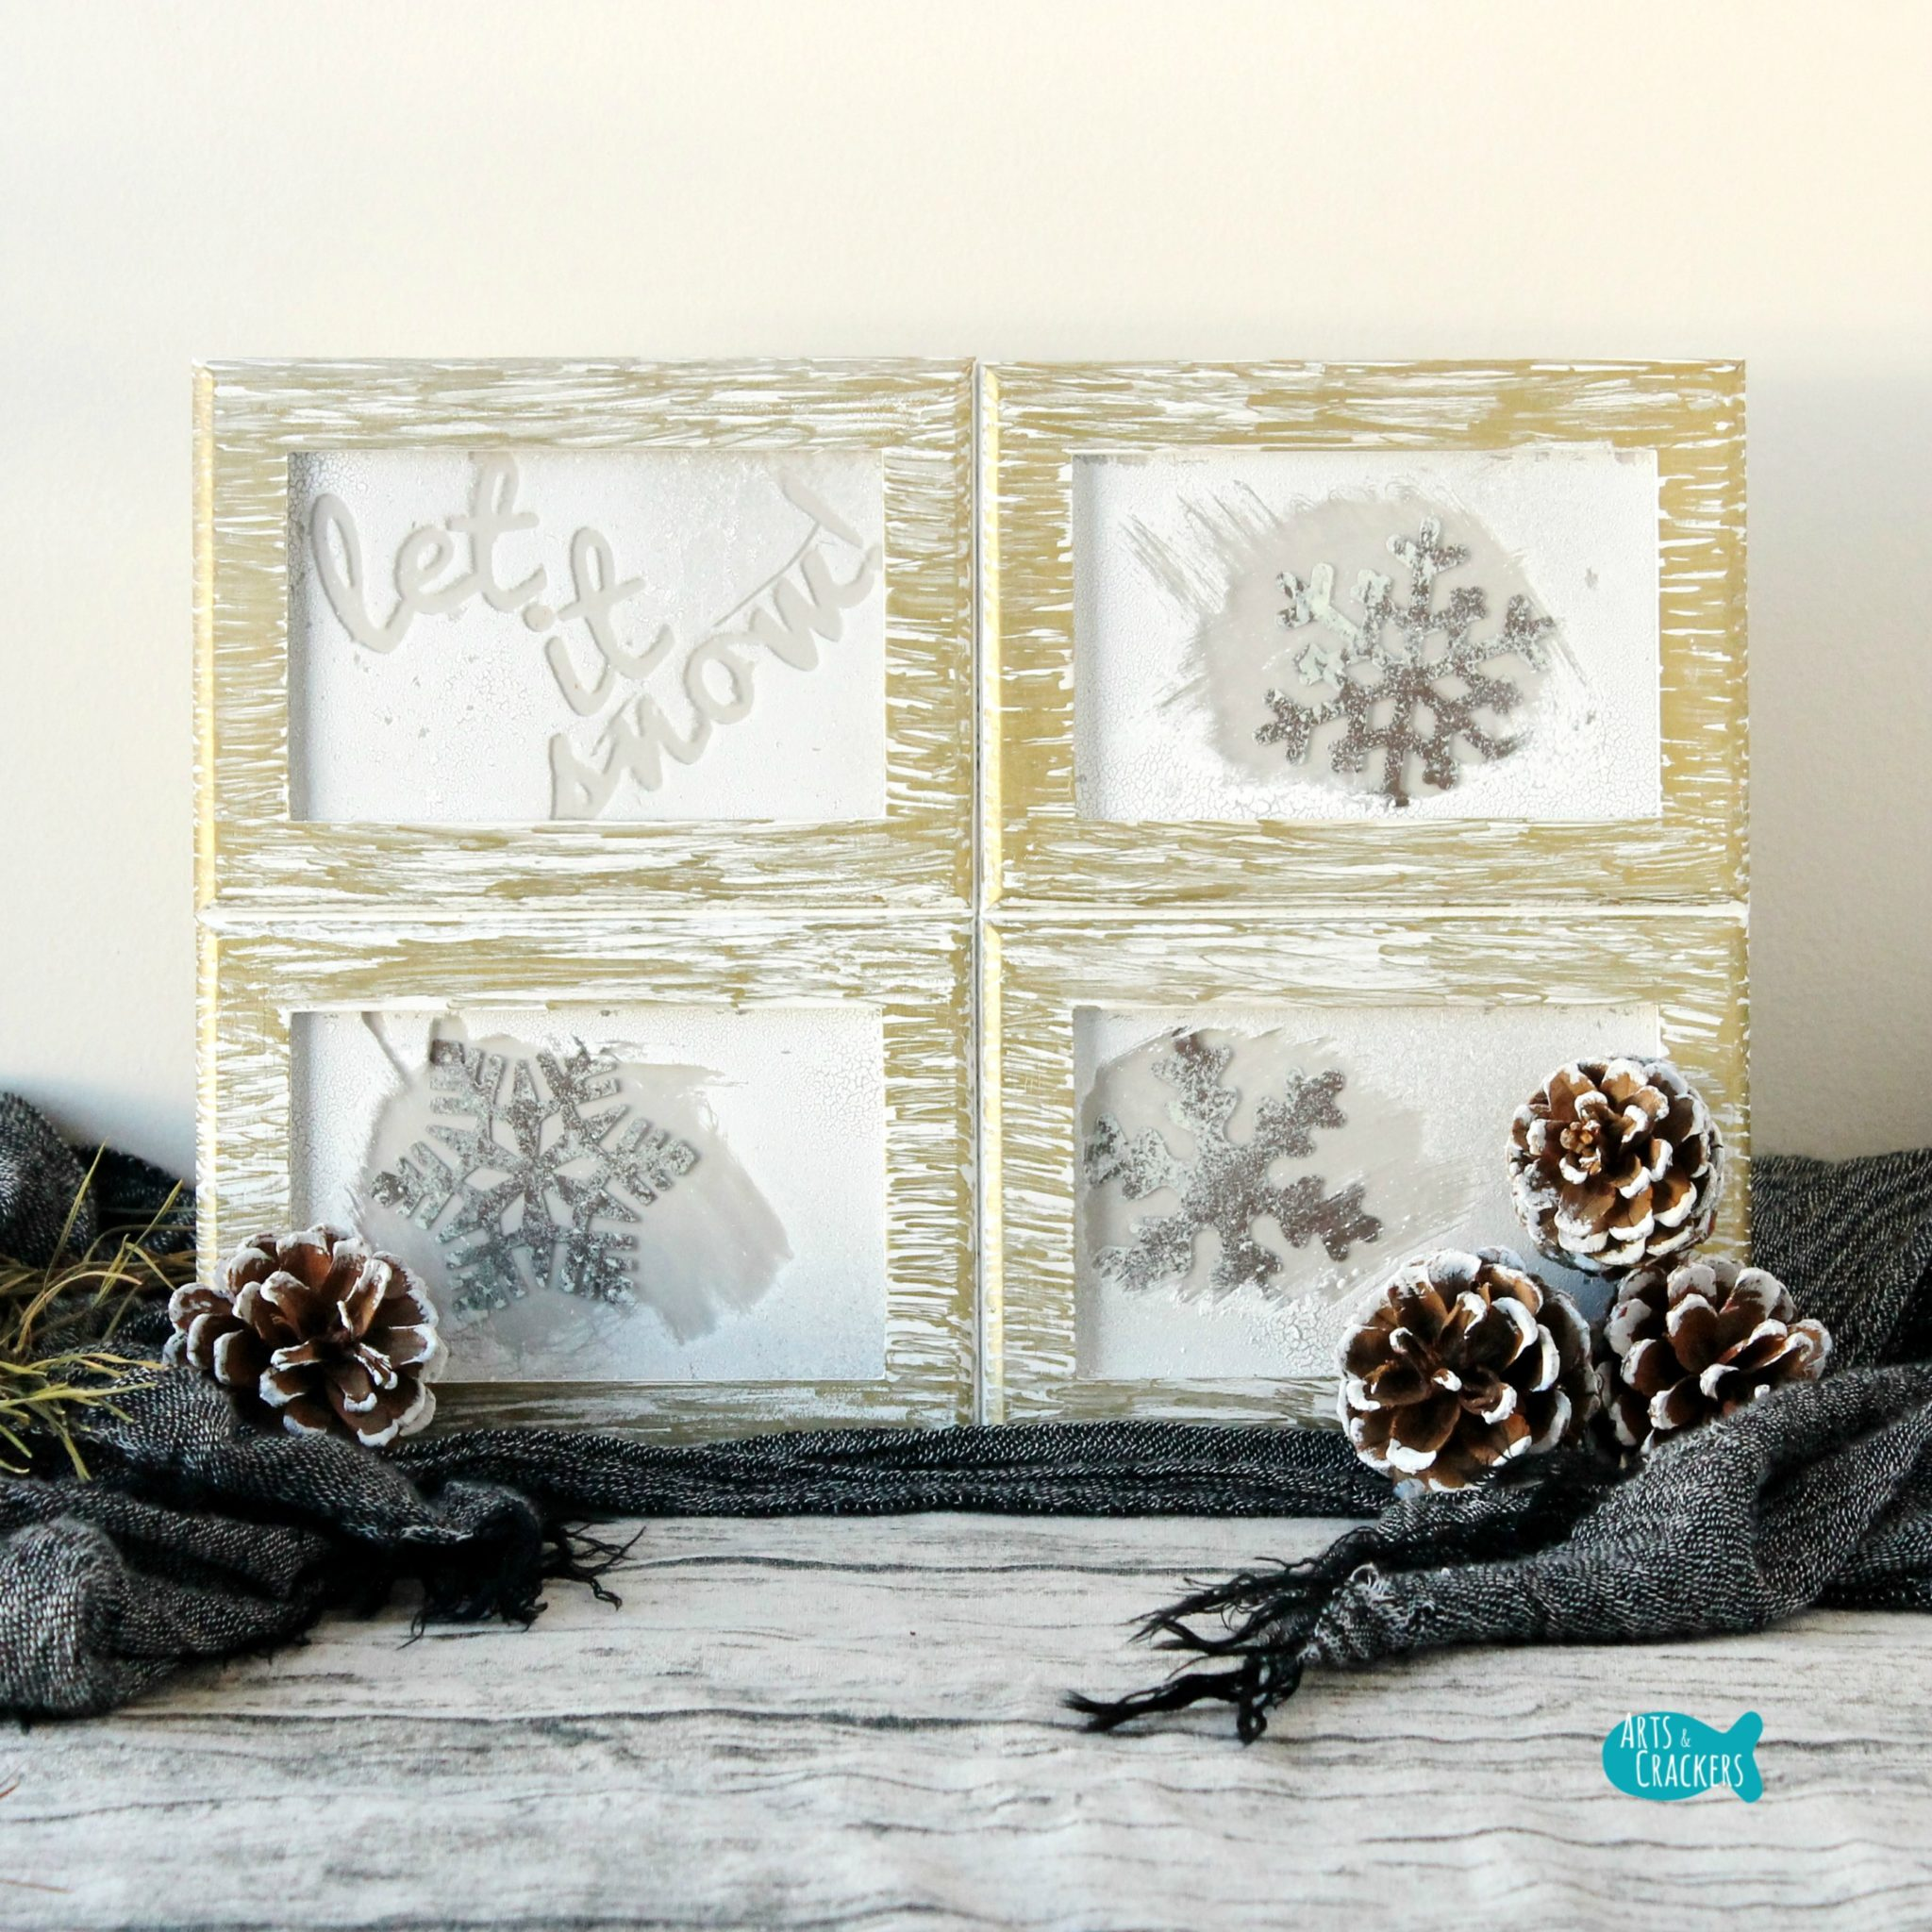 Home Decor: Rustic Frosted Frames Winter Home Decor DIY Project Tutorial